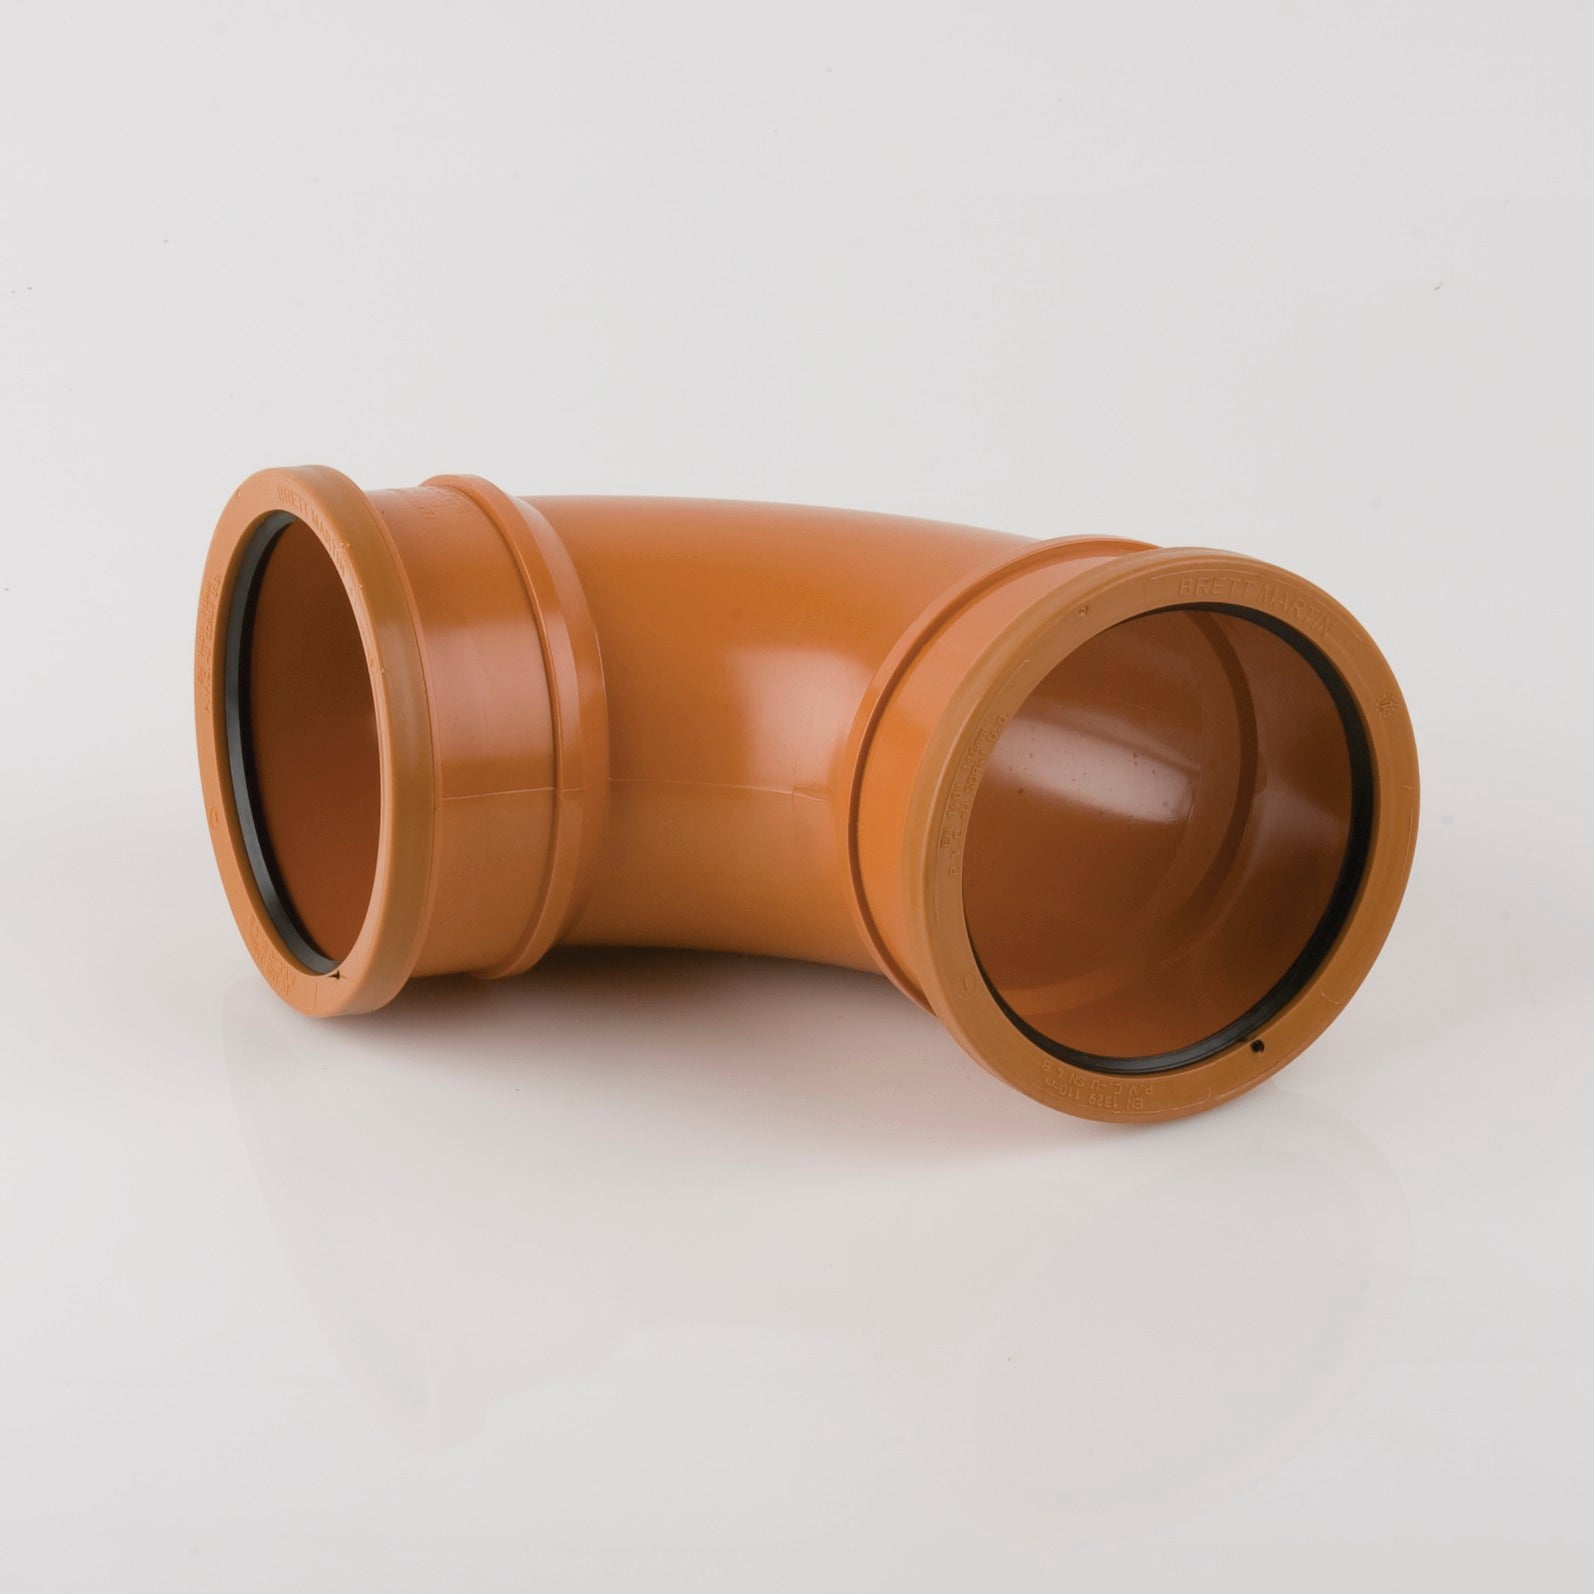 87.5 Degrees 110mm Double Socket Pipe Bend (Terracotta Orange)